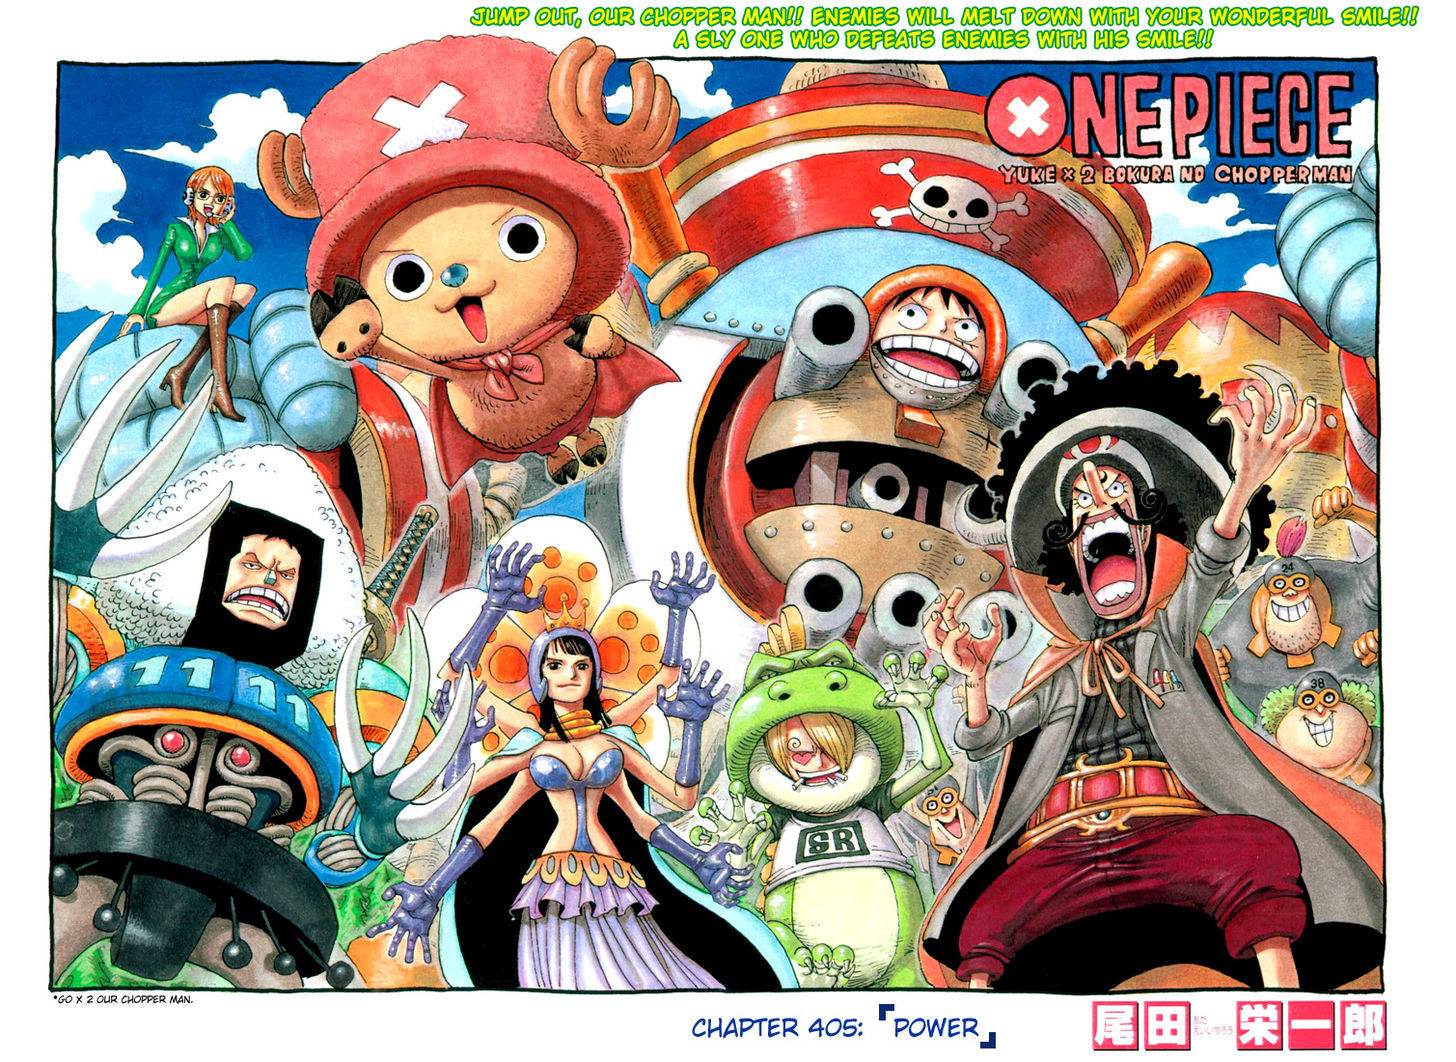 https://im.nineanime.com/comics/pic9/32/96/2753/OnePiece4050437.jpg Page 1